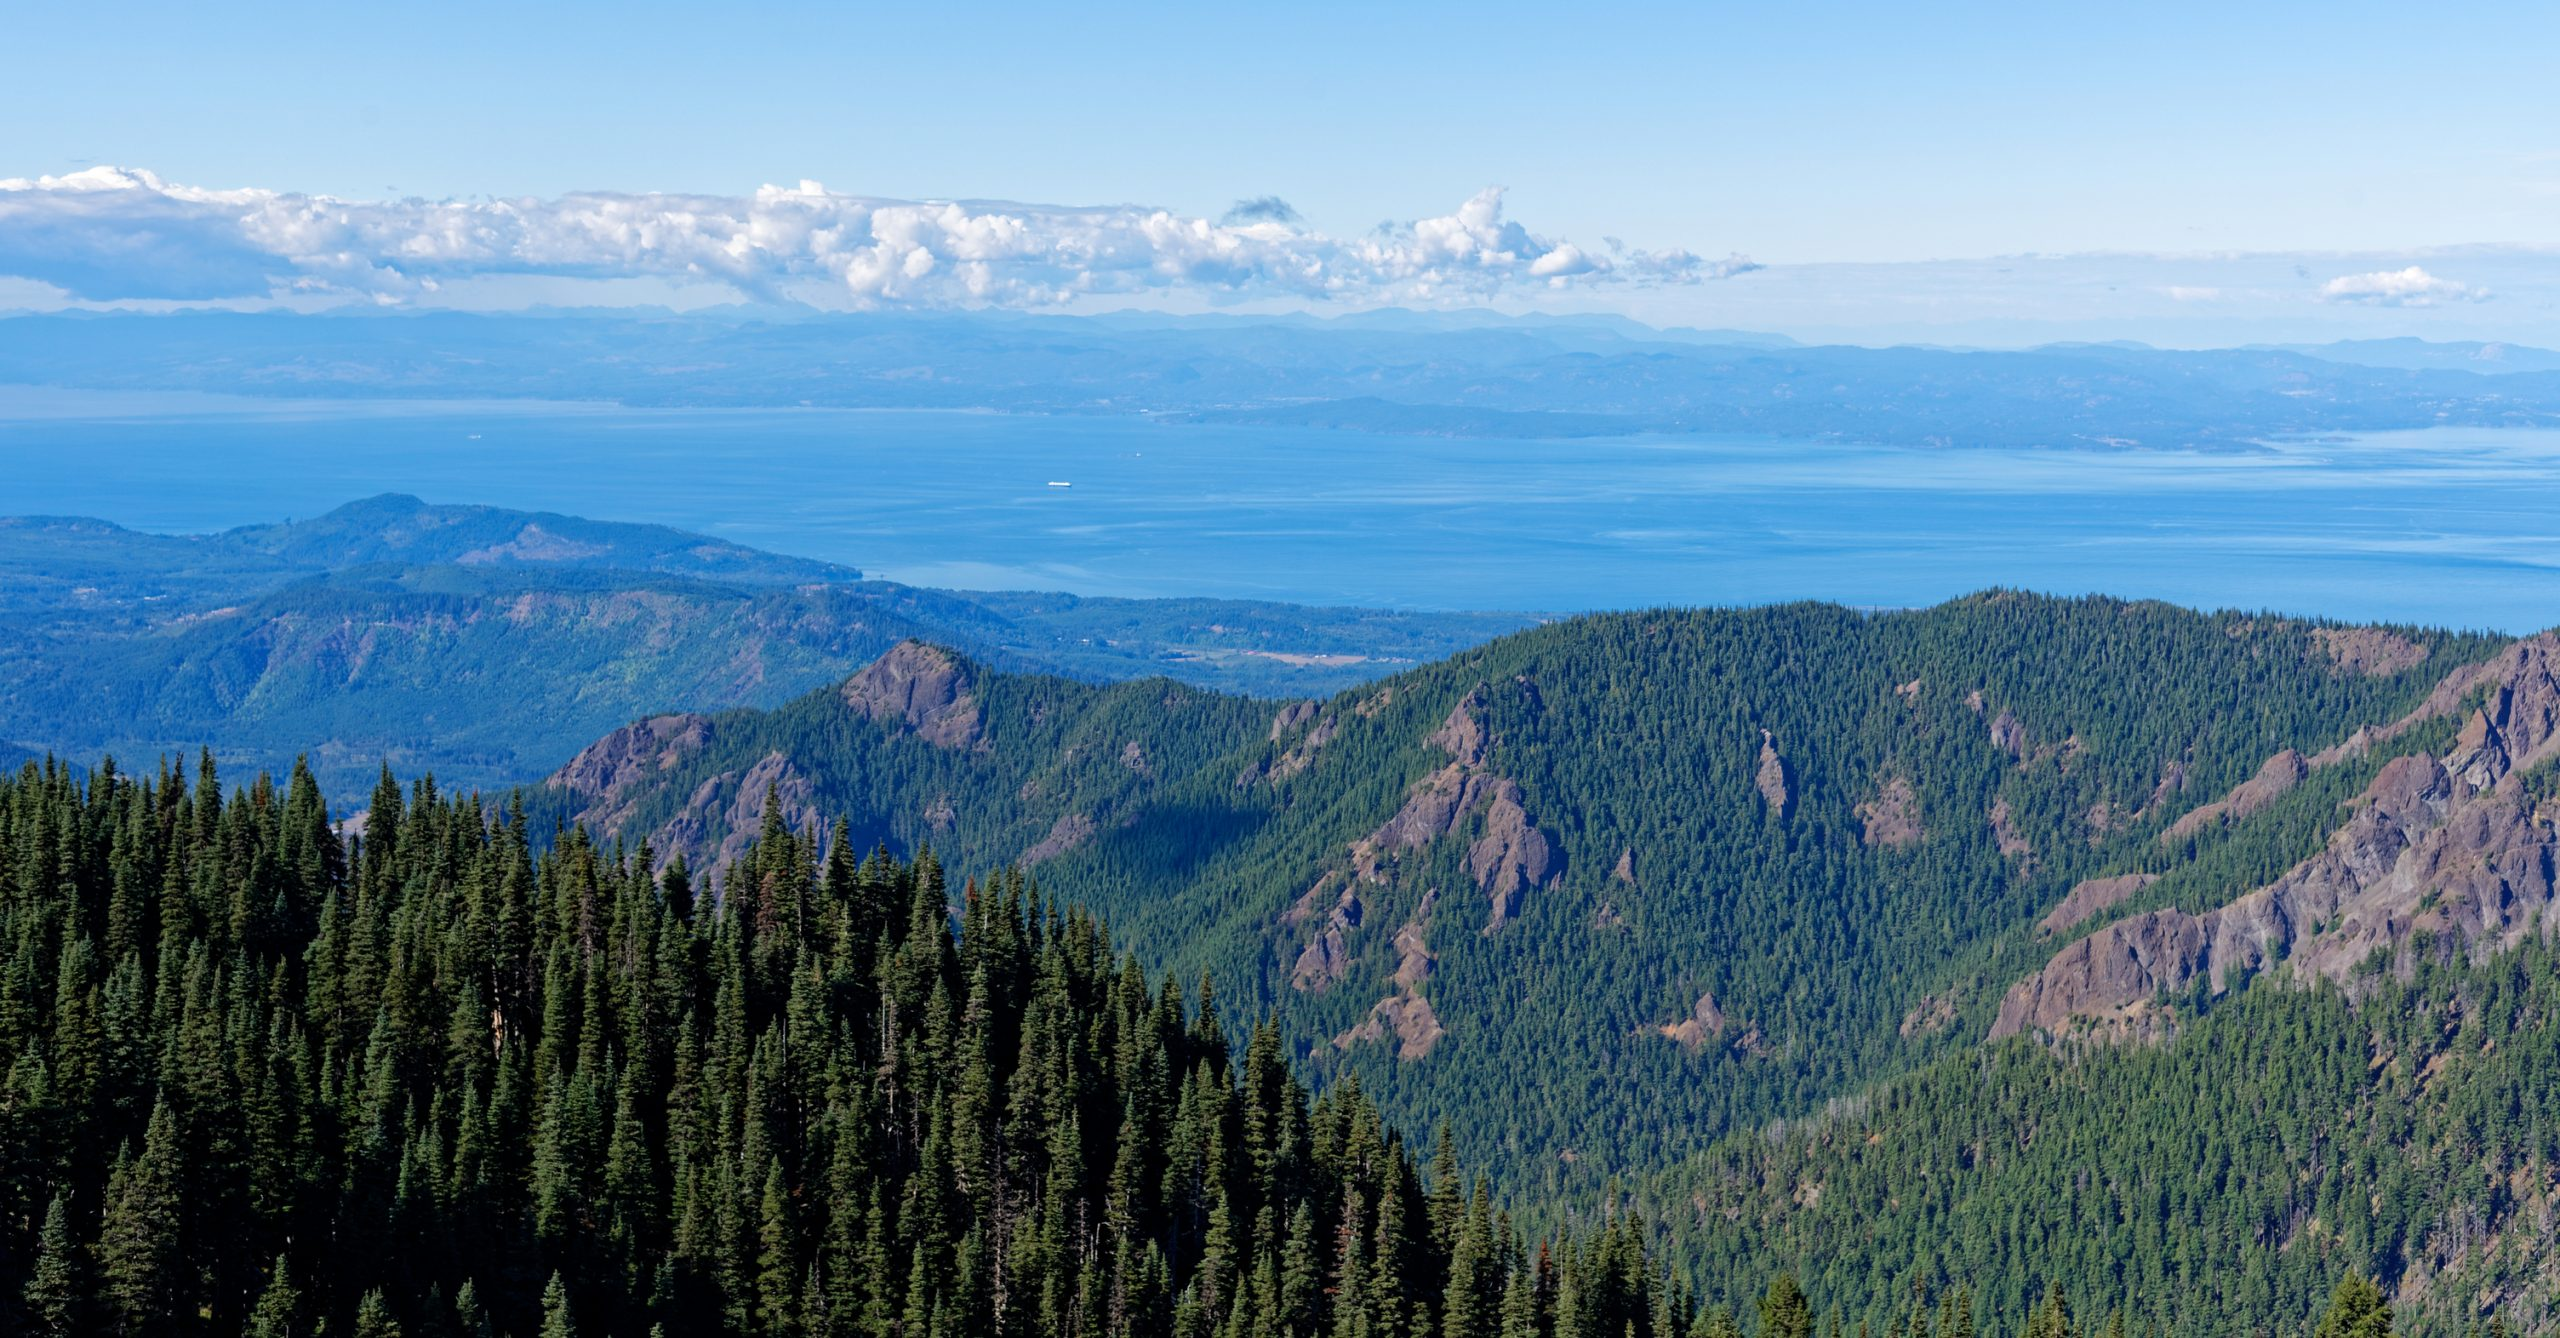 Overlooking Port Angeles WA, Victoria BC and the Strait of Juan de Fuca from Hurricane Hill, Olympic National Park